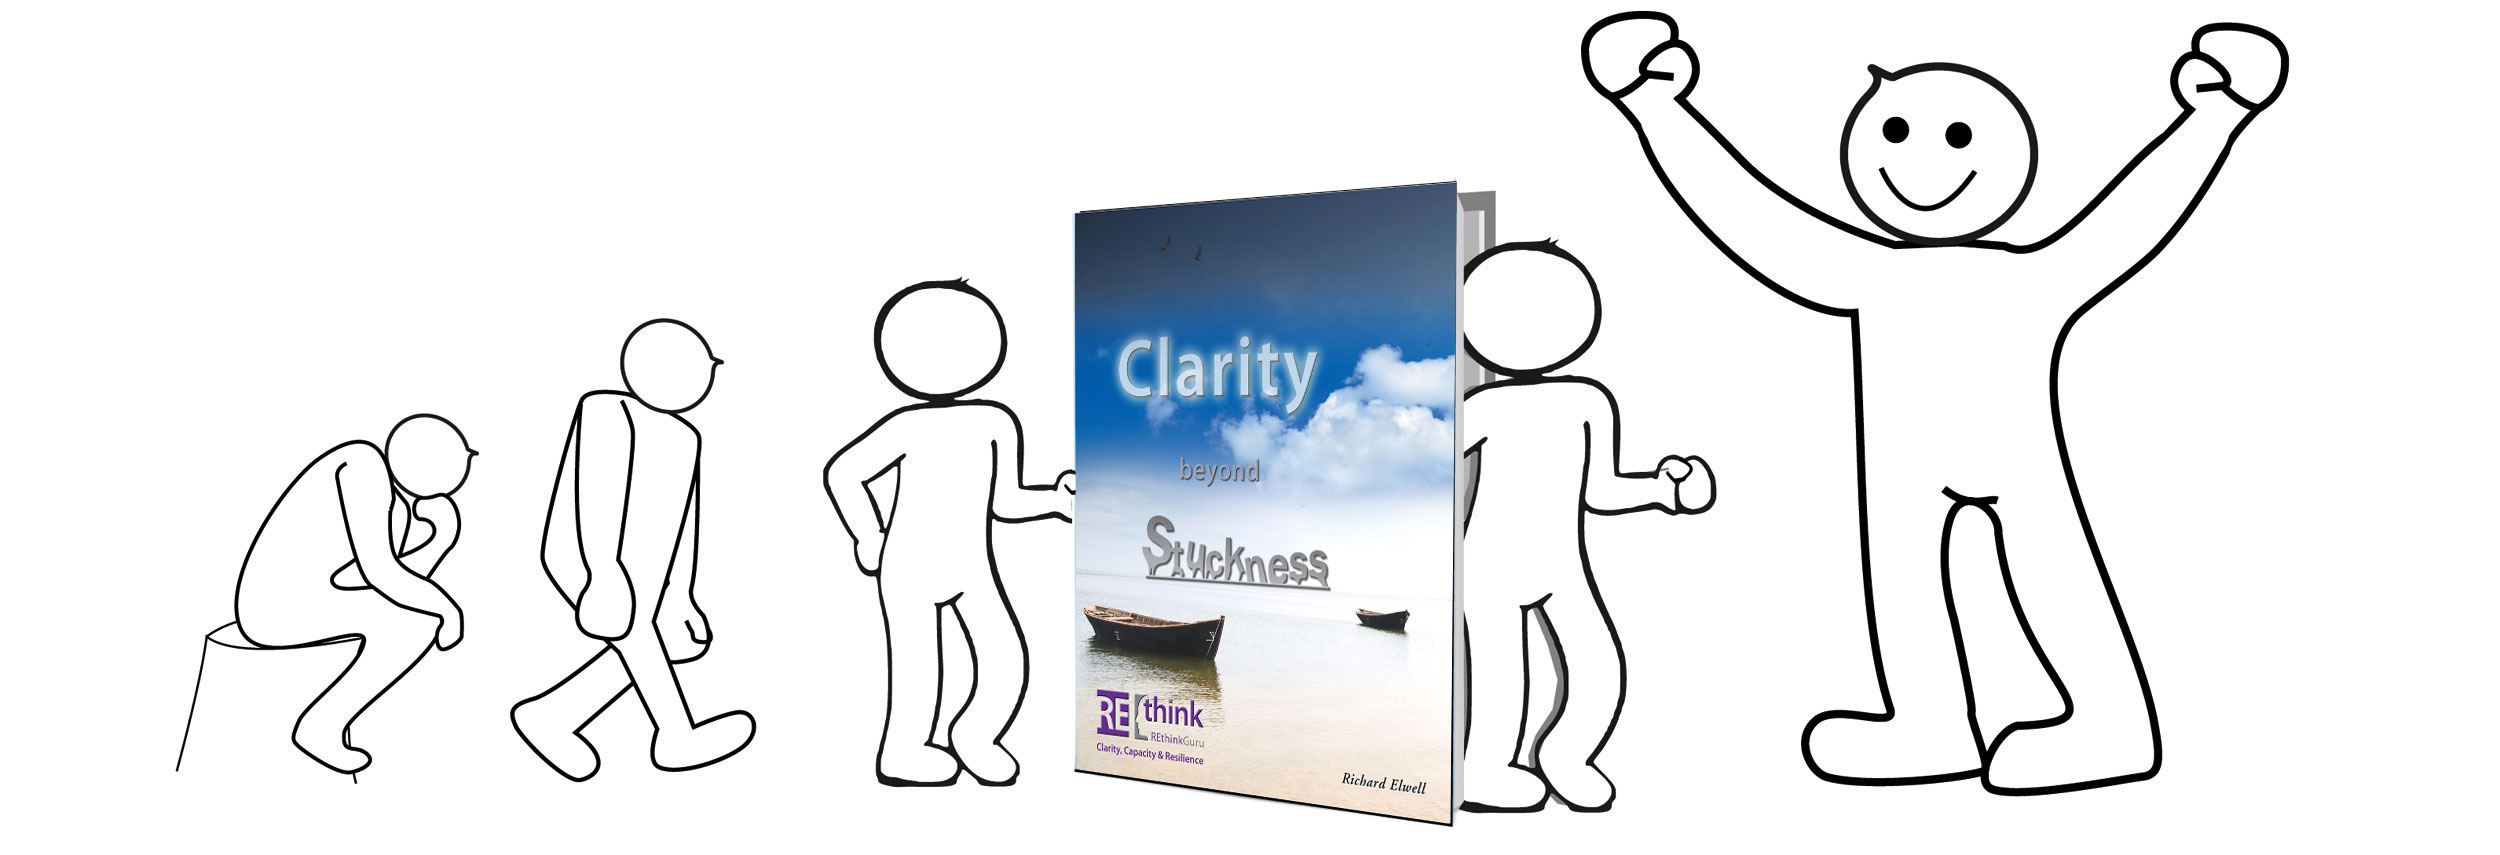 clarity-beyond-stuckness-header_new